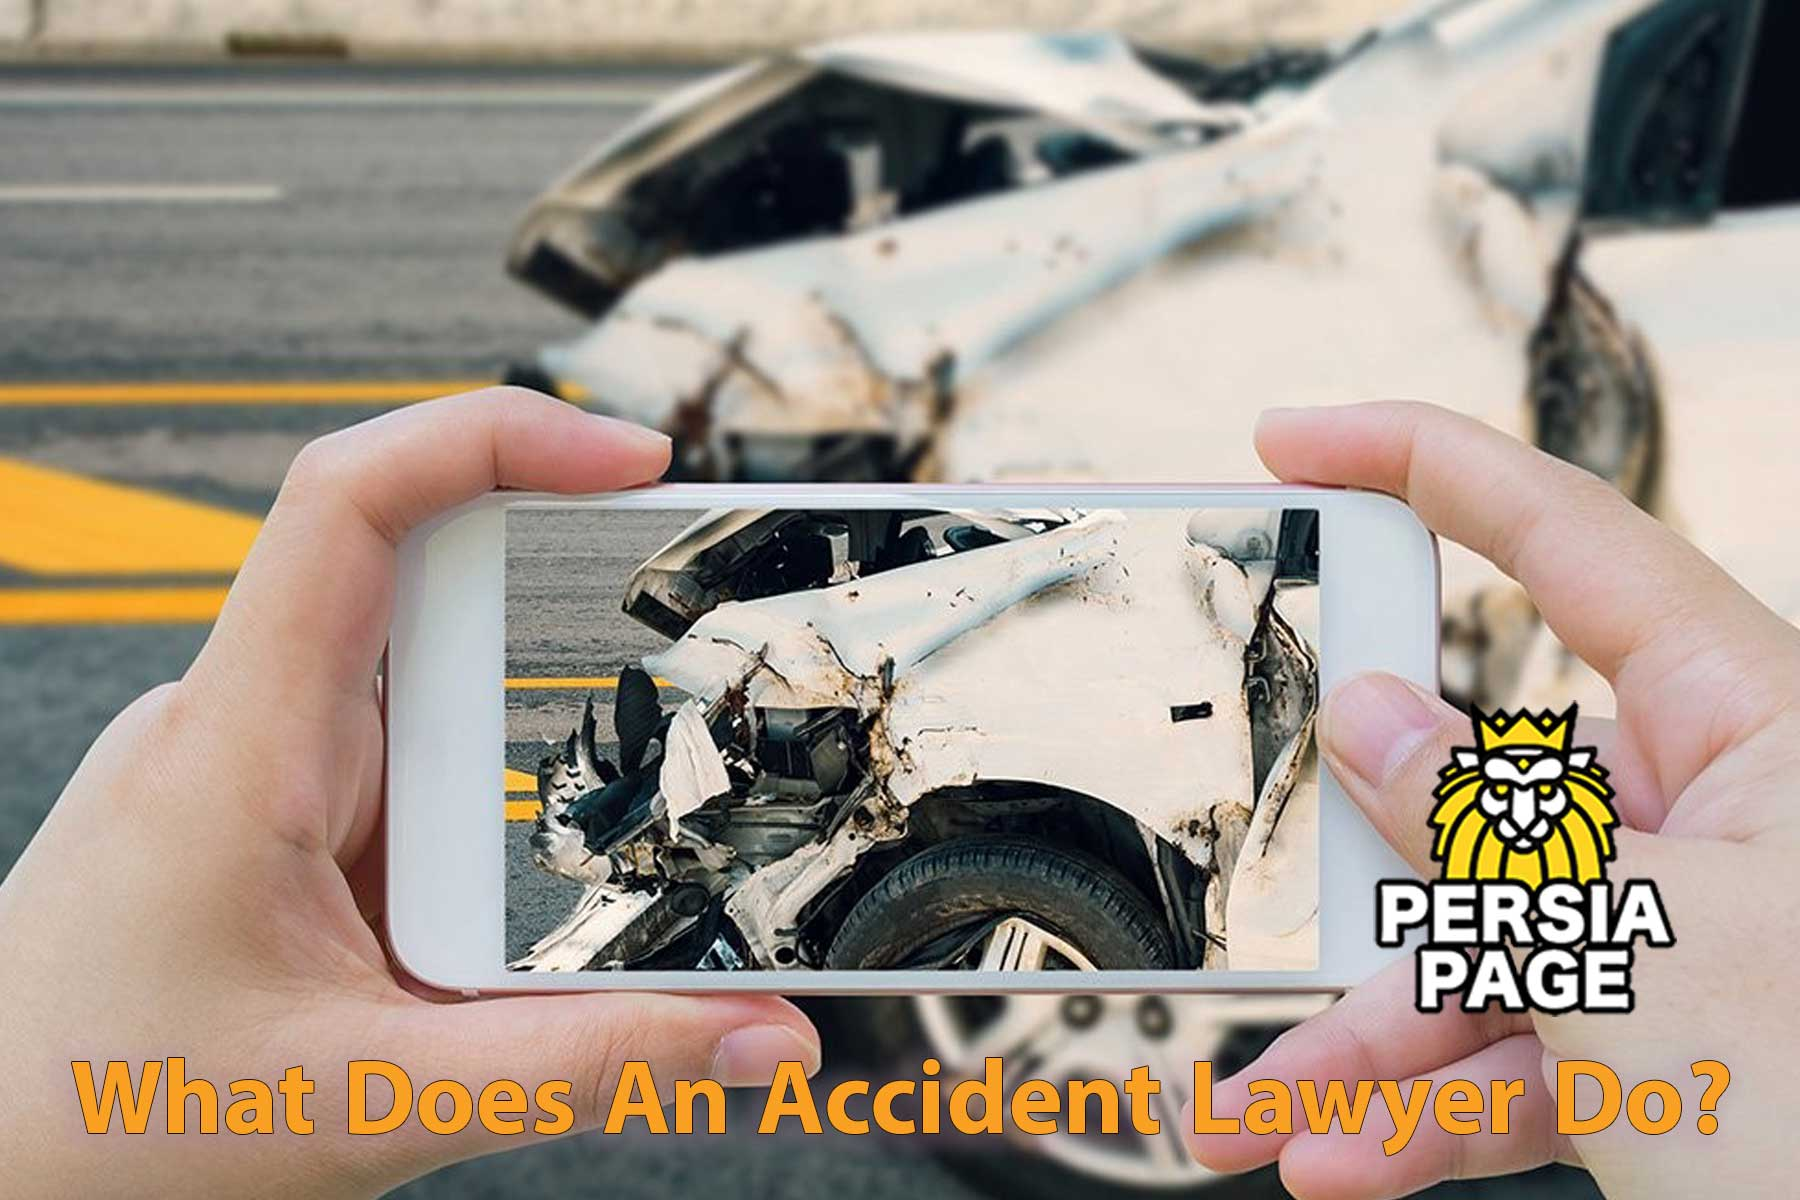 An Accident Lawyer